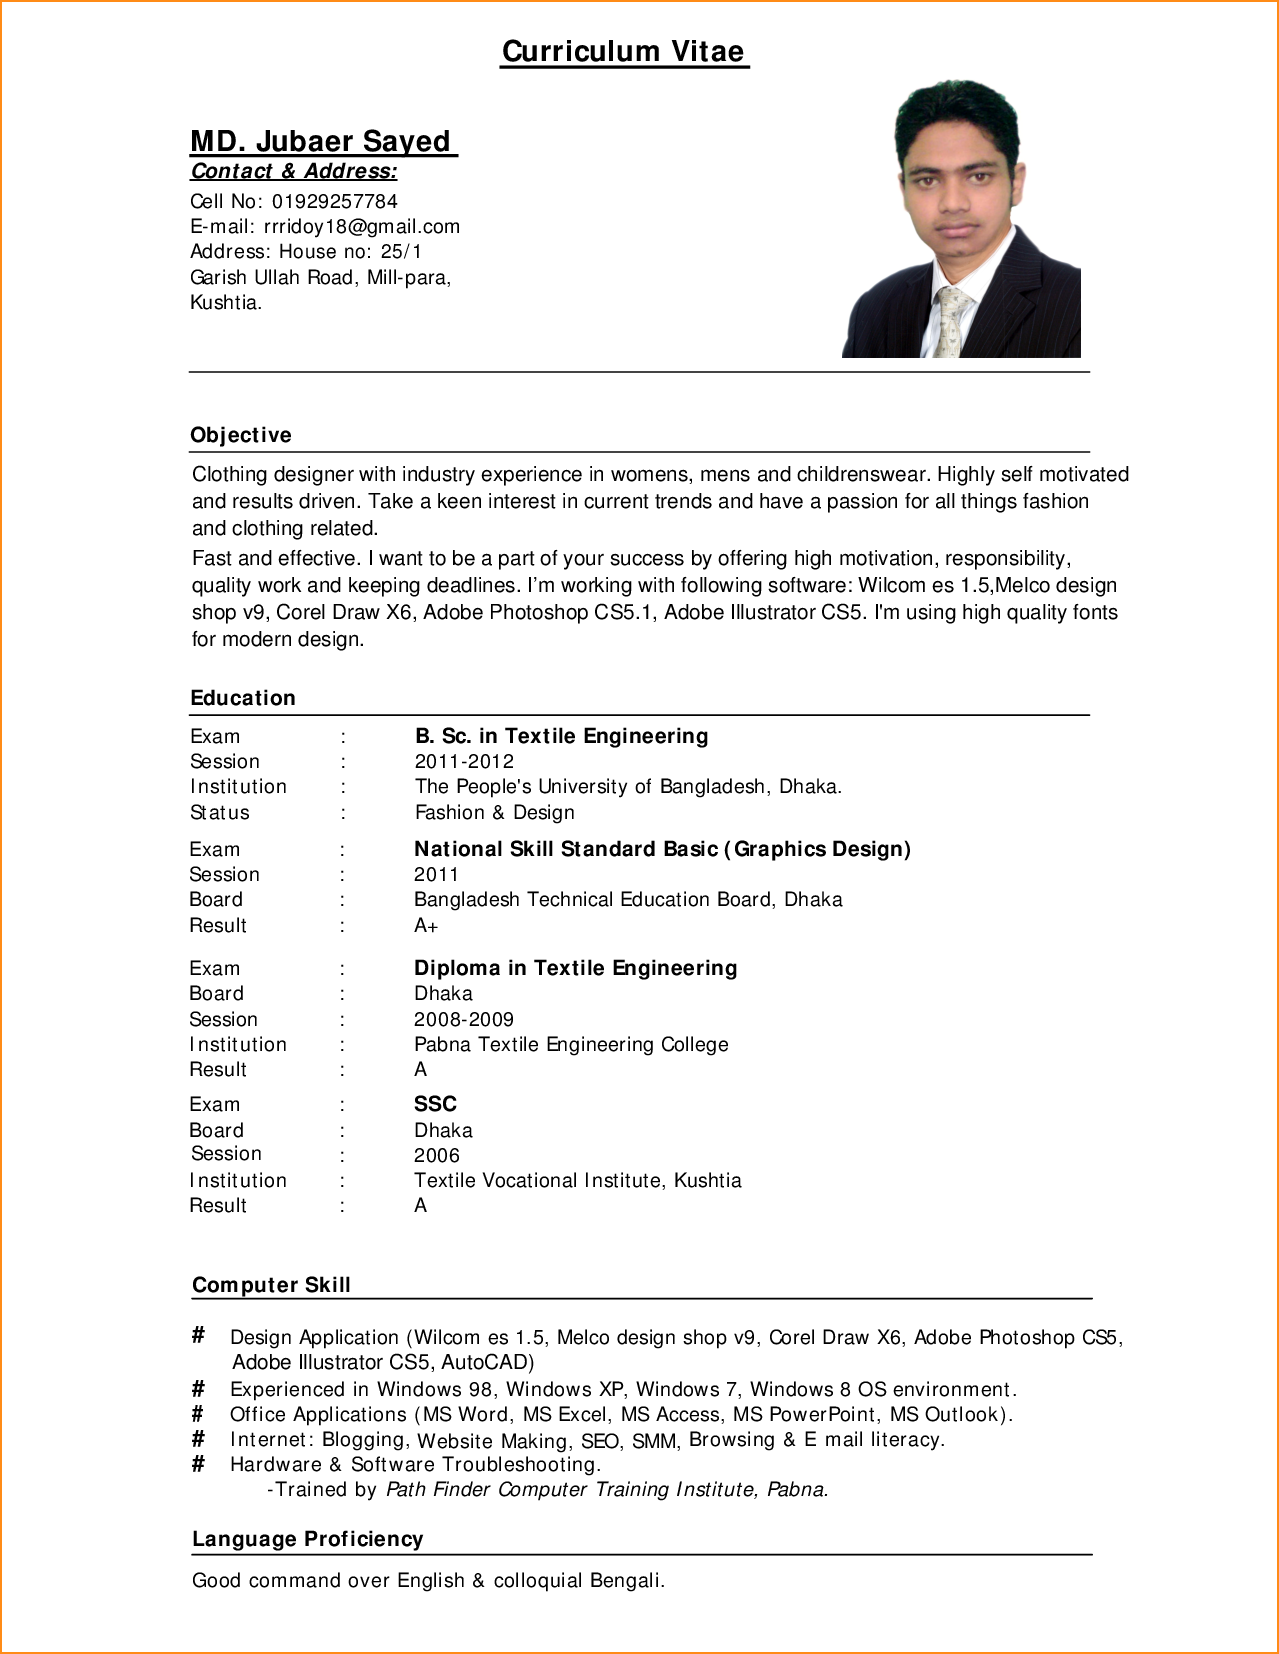 Sample Cv For Job (With images) Cv format, Standard cv